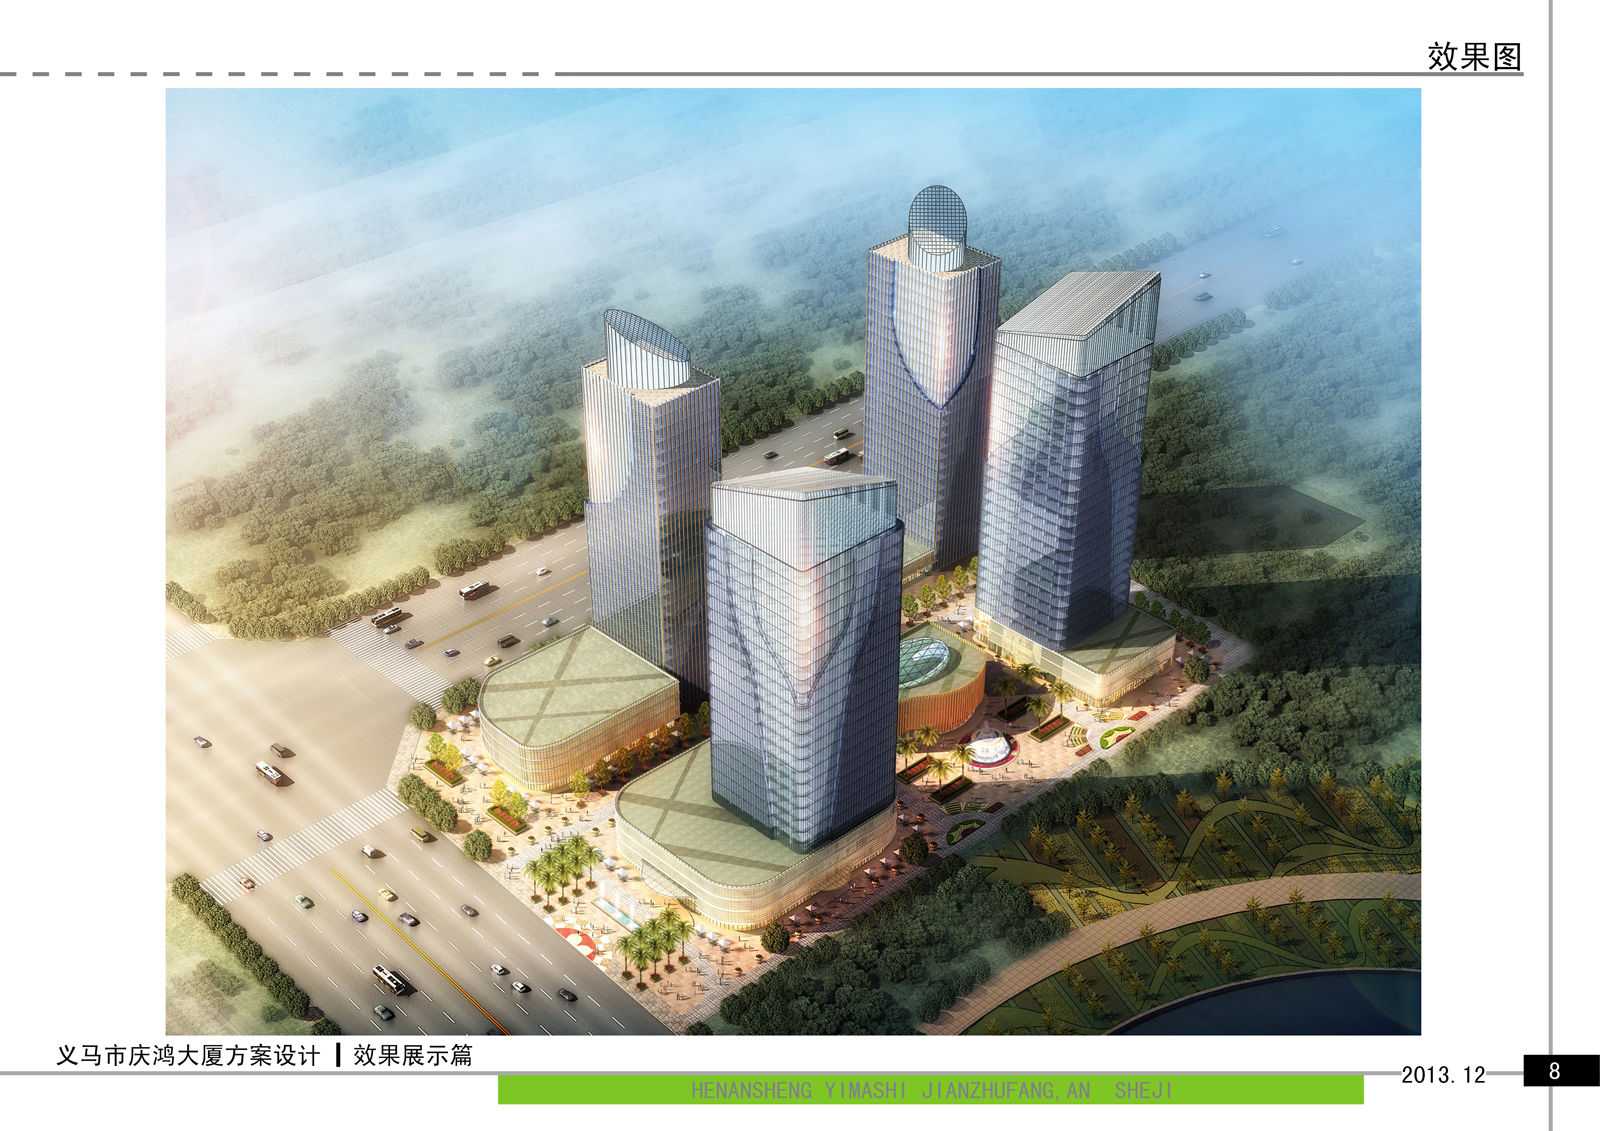 Design Plan of Hongqing Building in Yima City